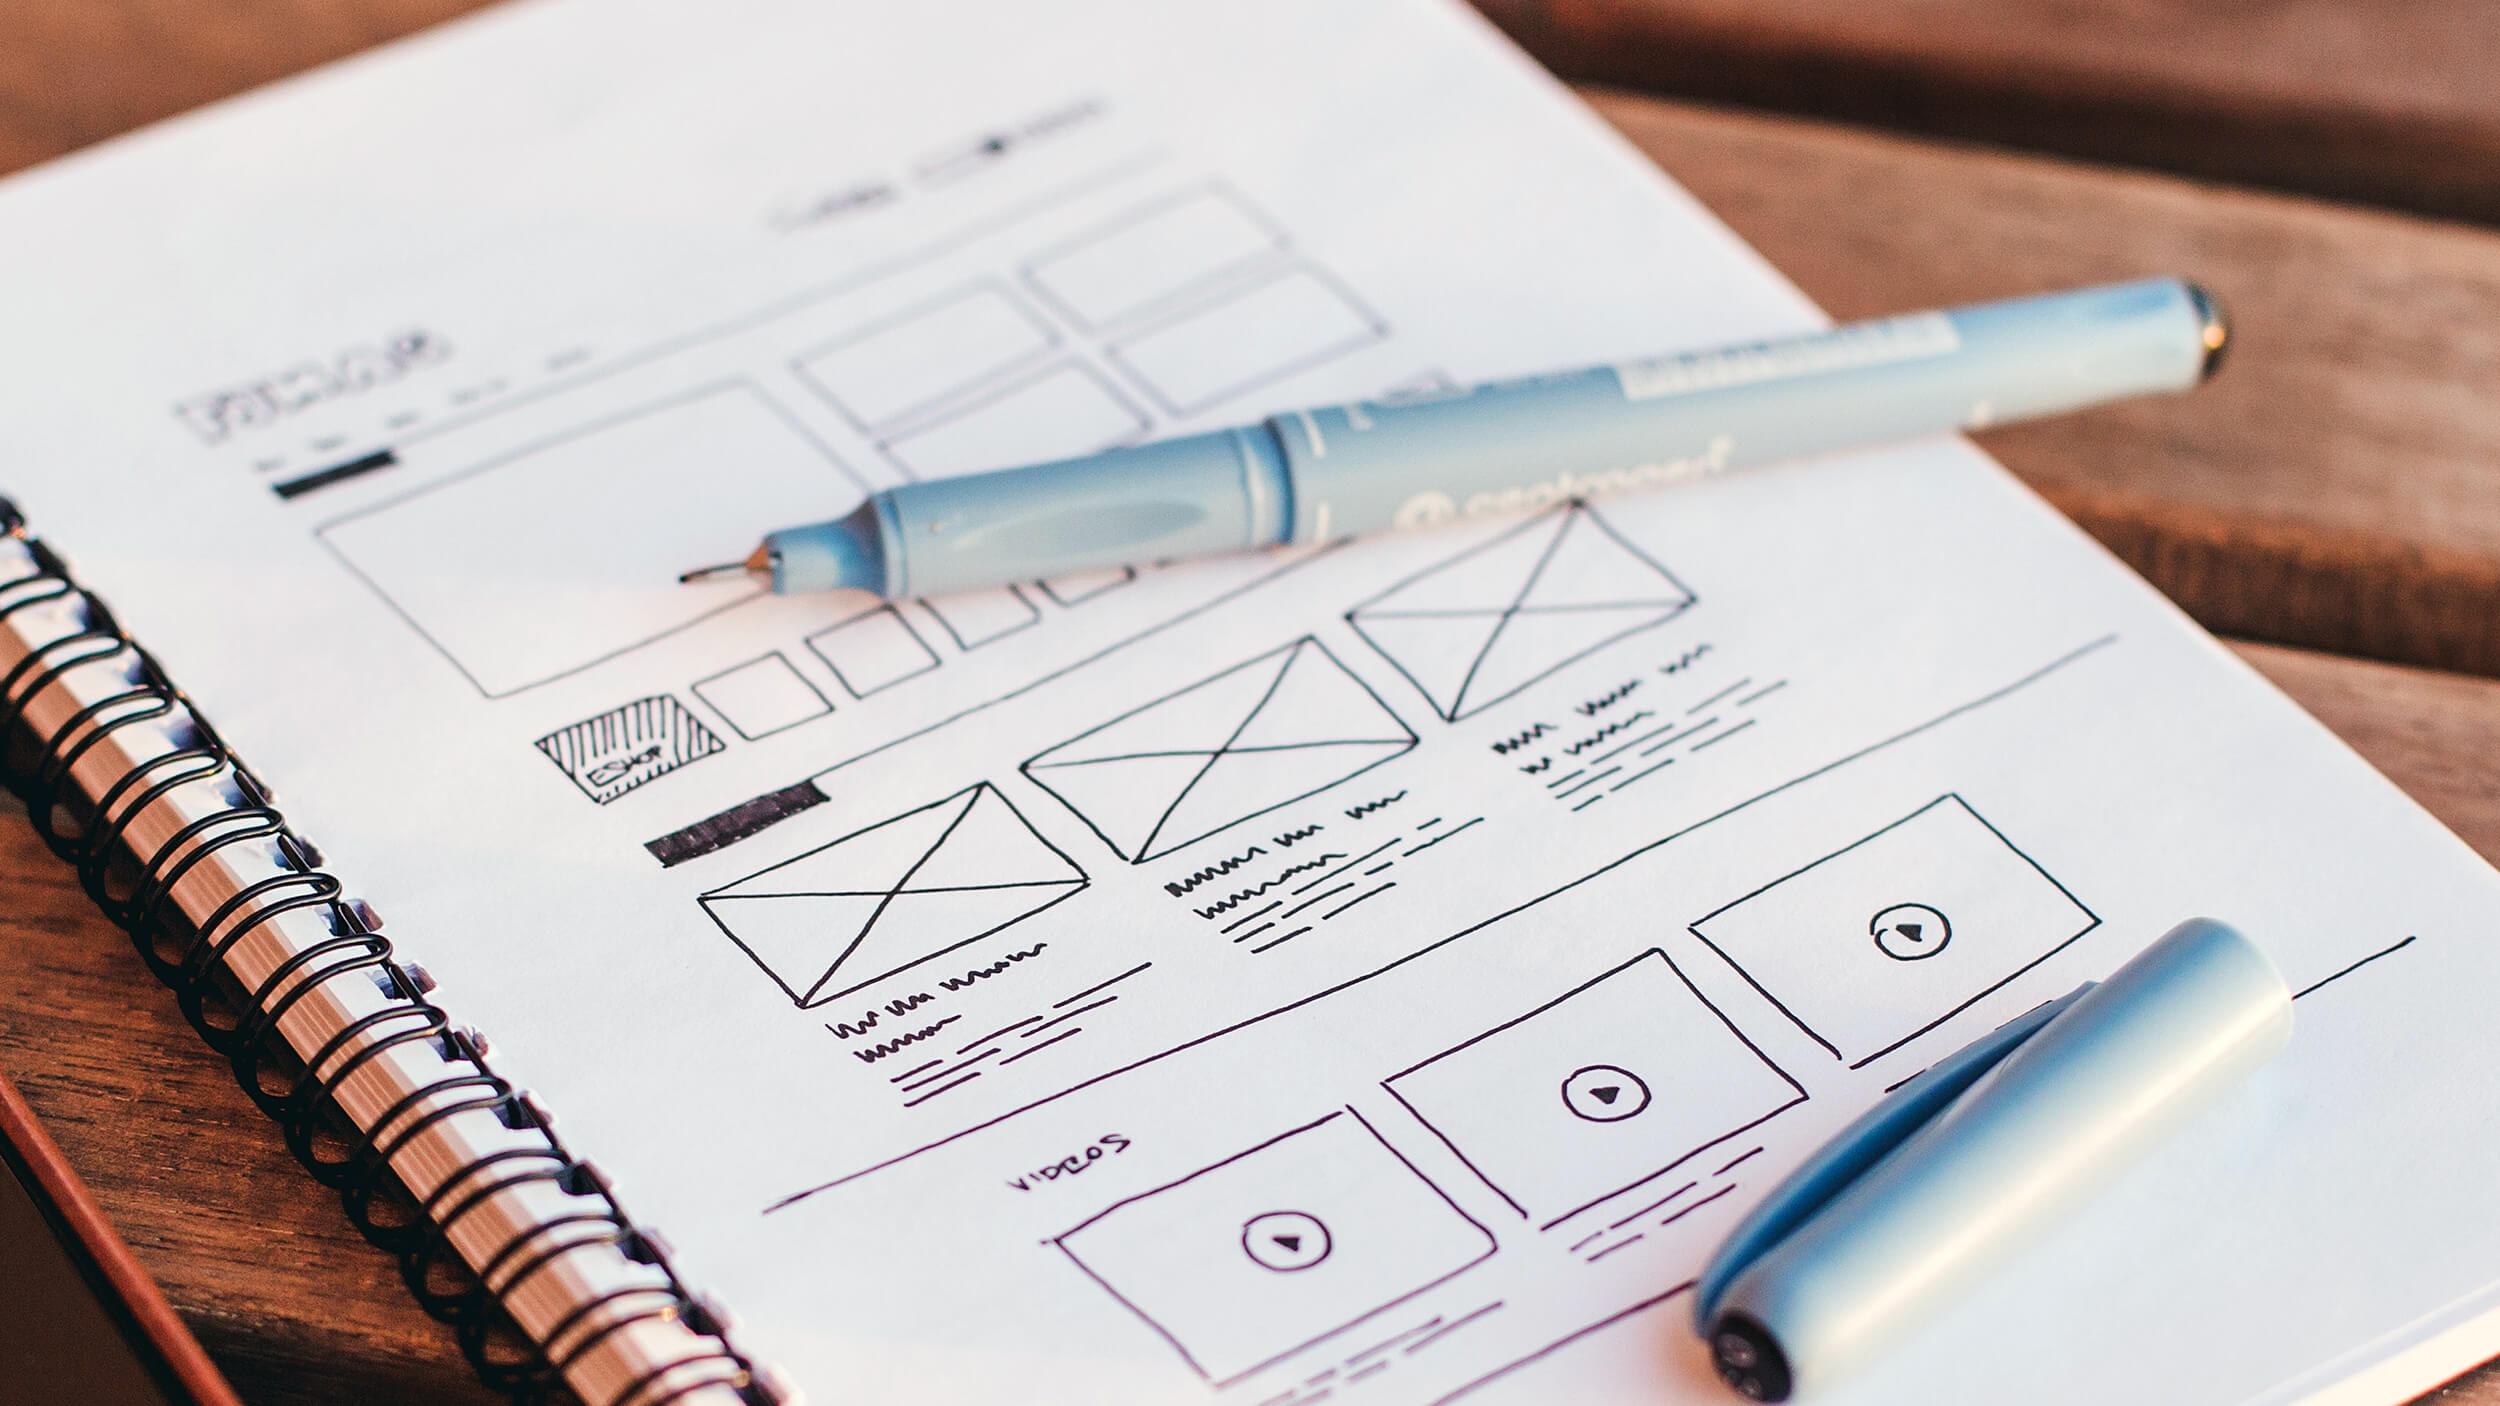 Squarespace Web Design Specialists - Wireframing a design in a notebook